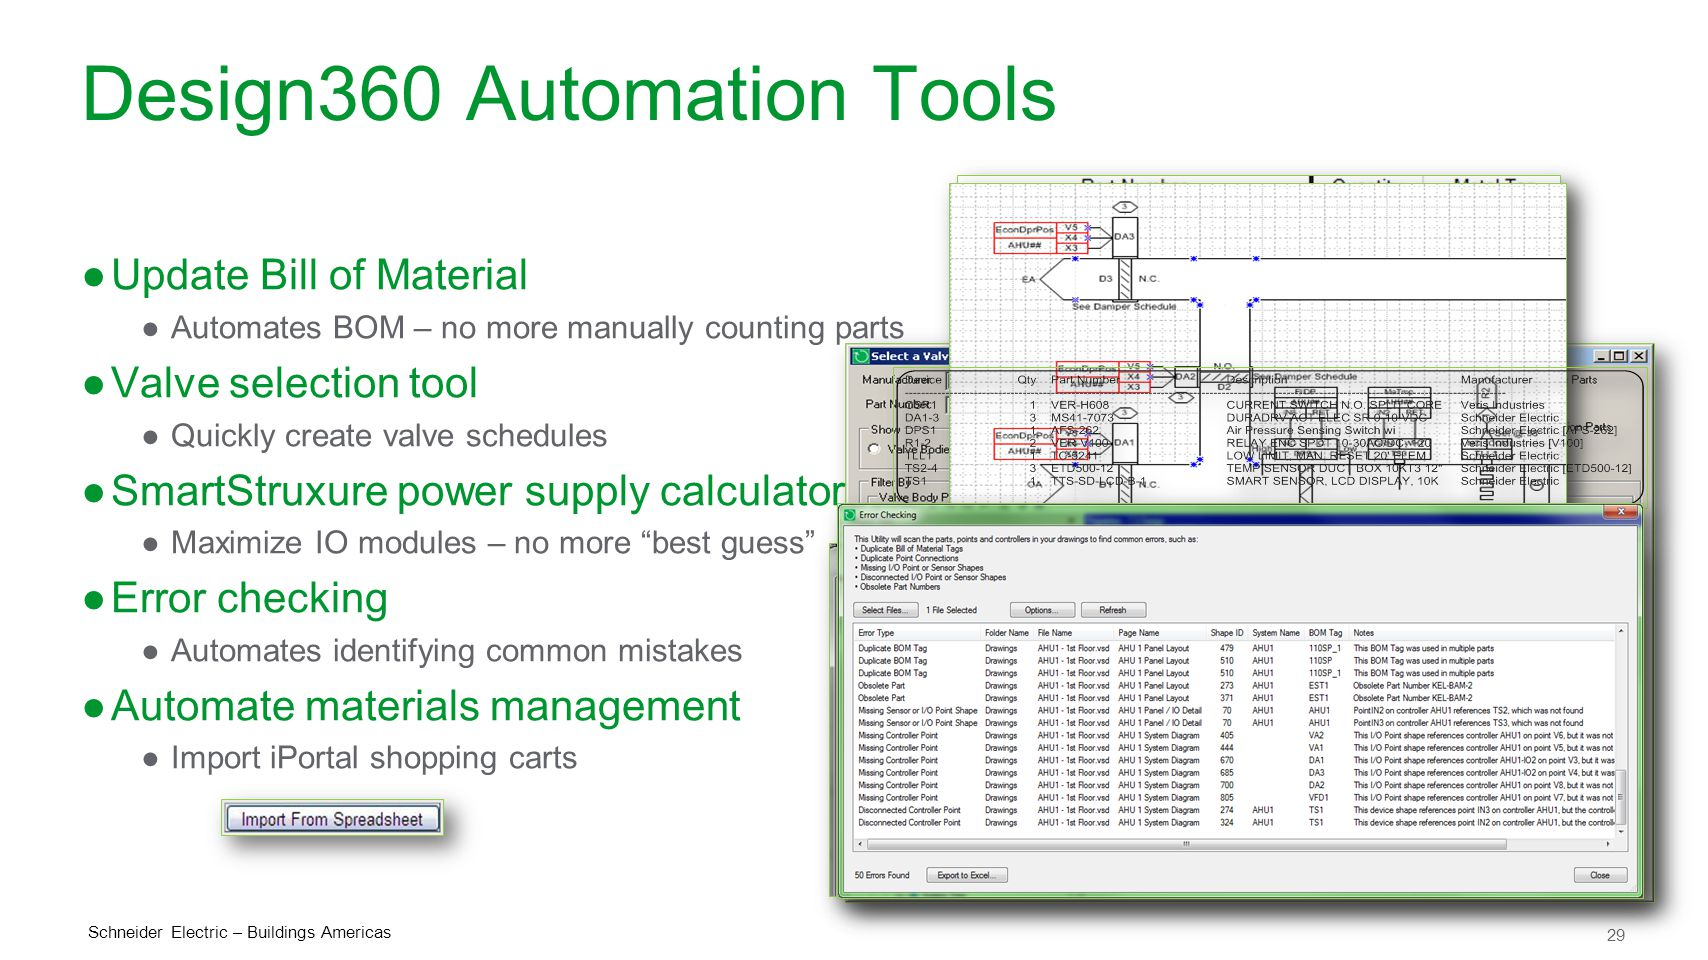 29 Schneider Electric – Buildings Americas Design360 Automation Tools ●Update Bill of Material ●Automates BOM – no more manually counting parts ●Valve selection tool ●Quickly create valve schedules ●SmartStruxure power supply calculator ●Maximize IO modules – no more best guess ●Error checking ●Automates identifying common mistakes ●Automate materials management ●Import iPortal shopping carts